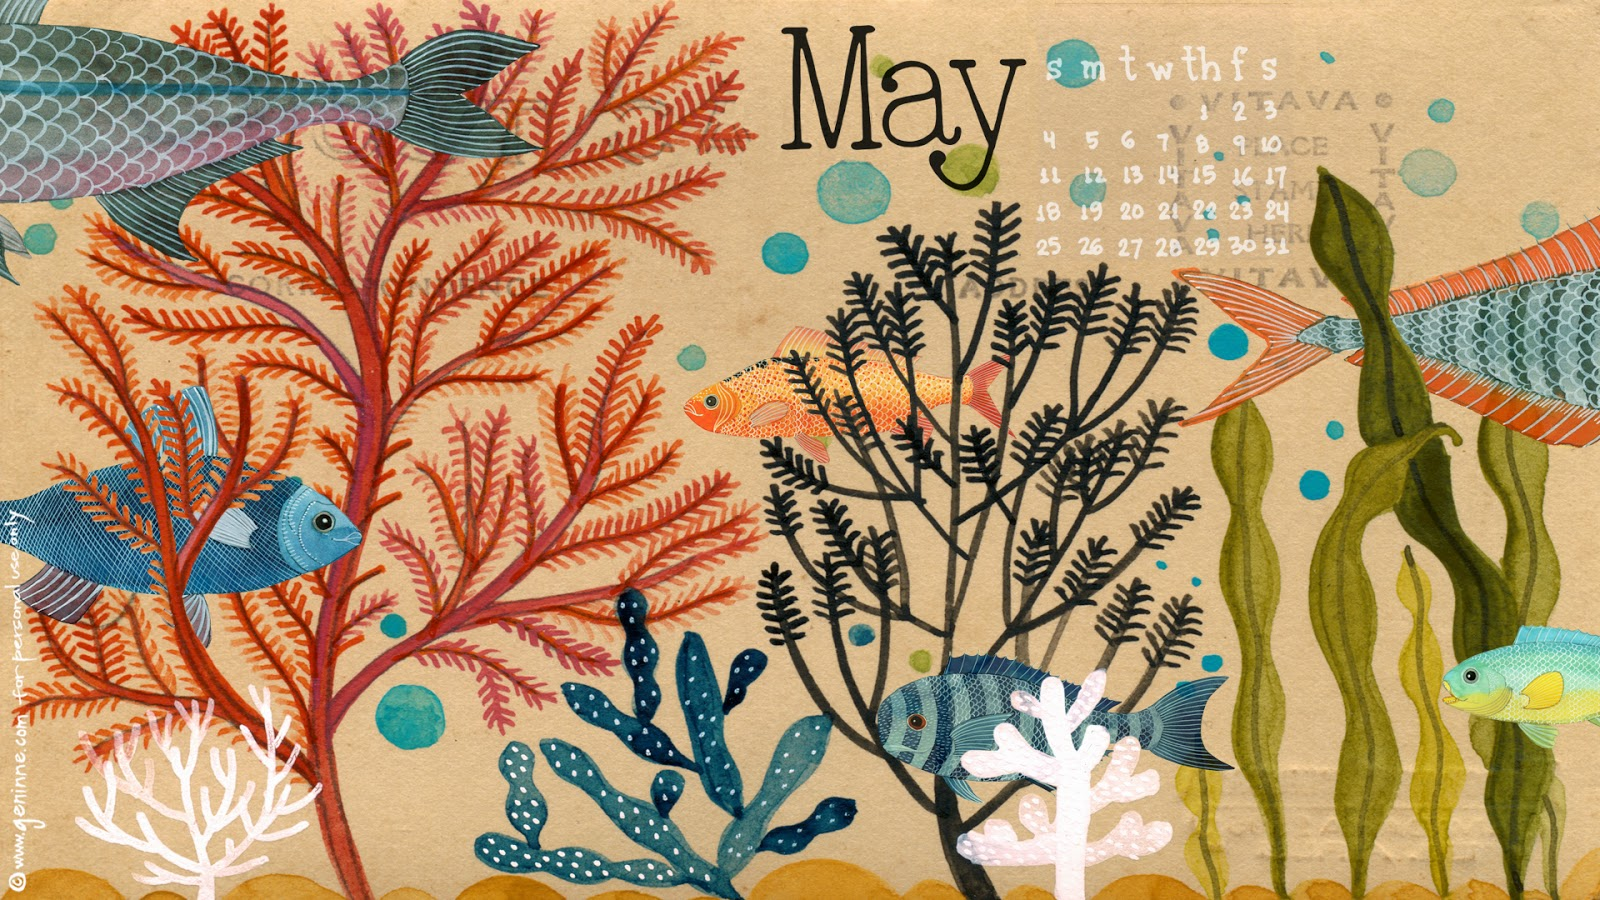 Geninne S Art Blog April 2014